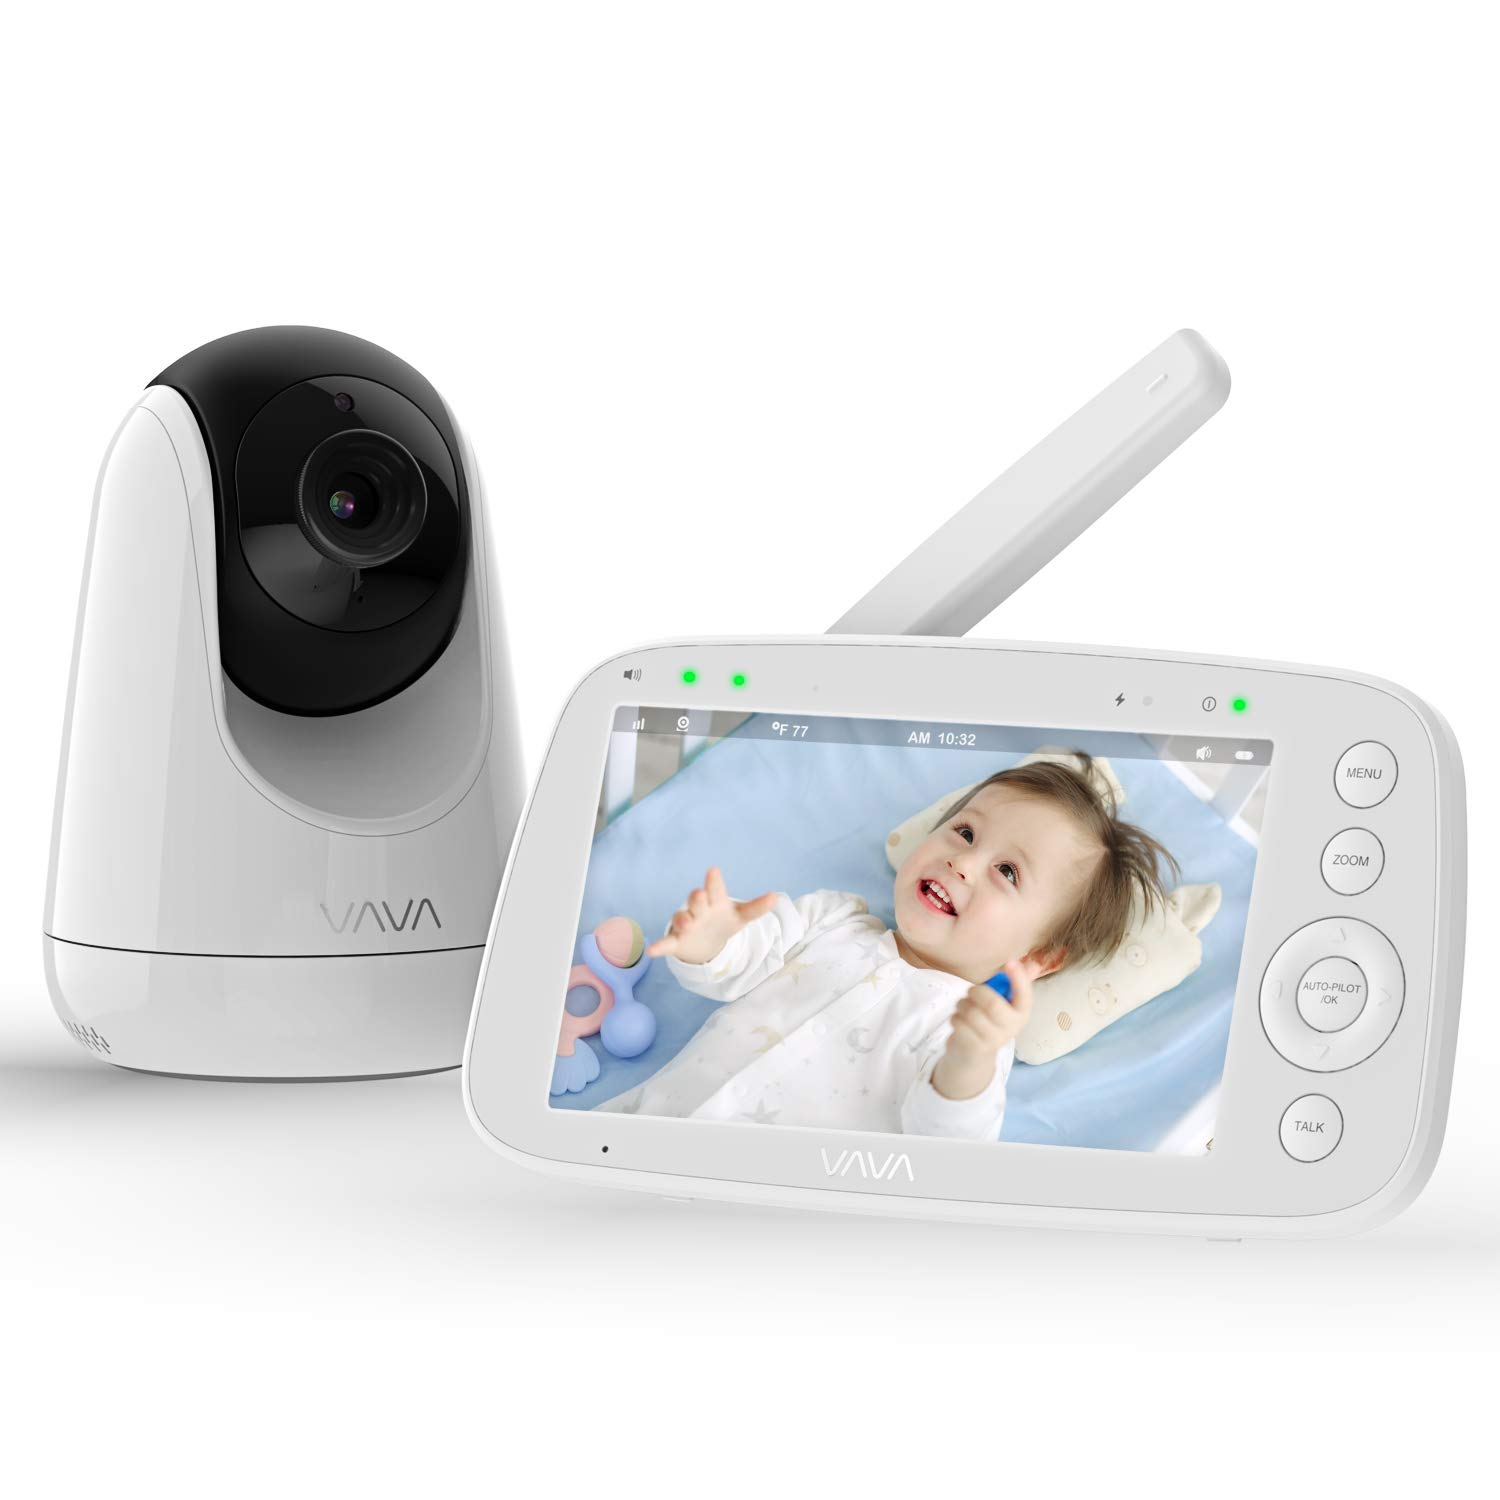 VAVA wi fi baby monitor long range baby monitor best long range baby video monitor